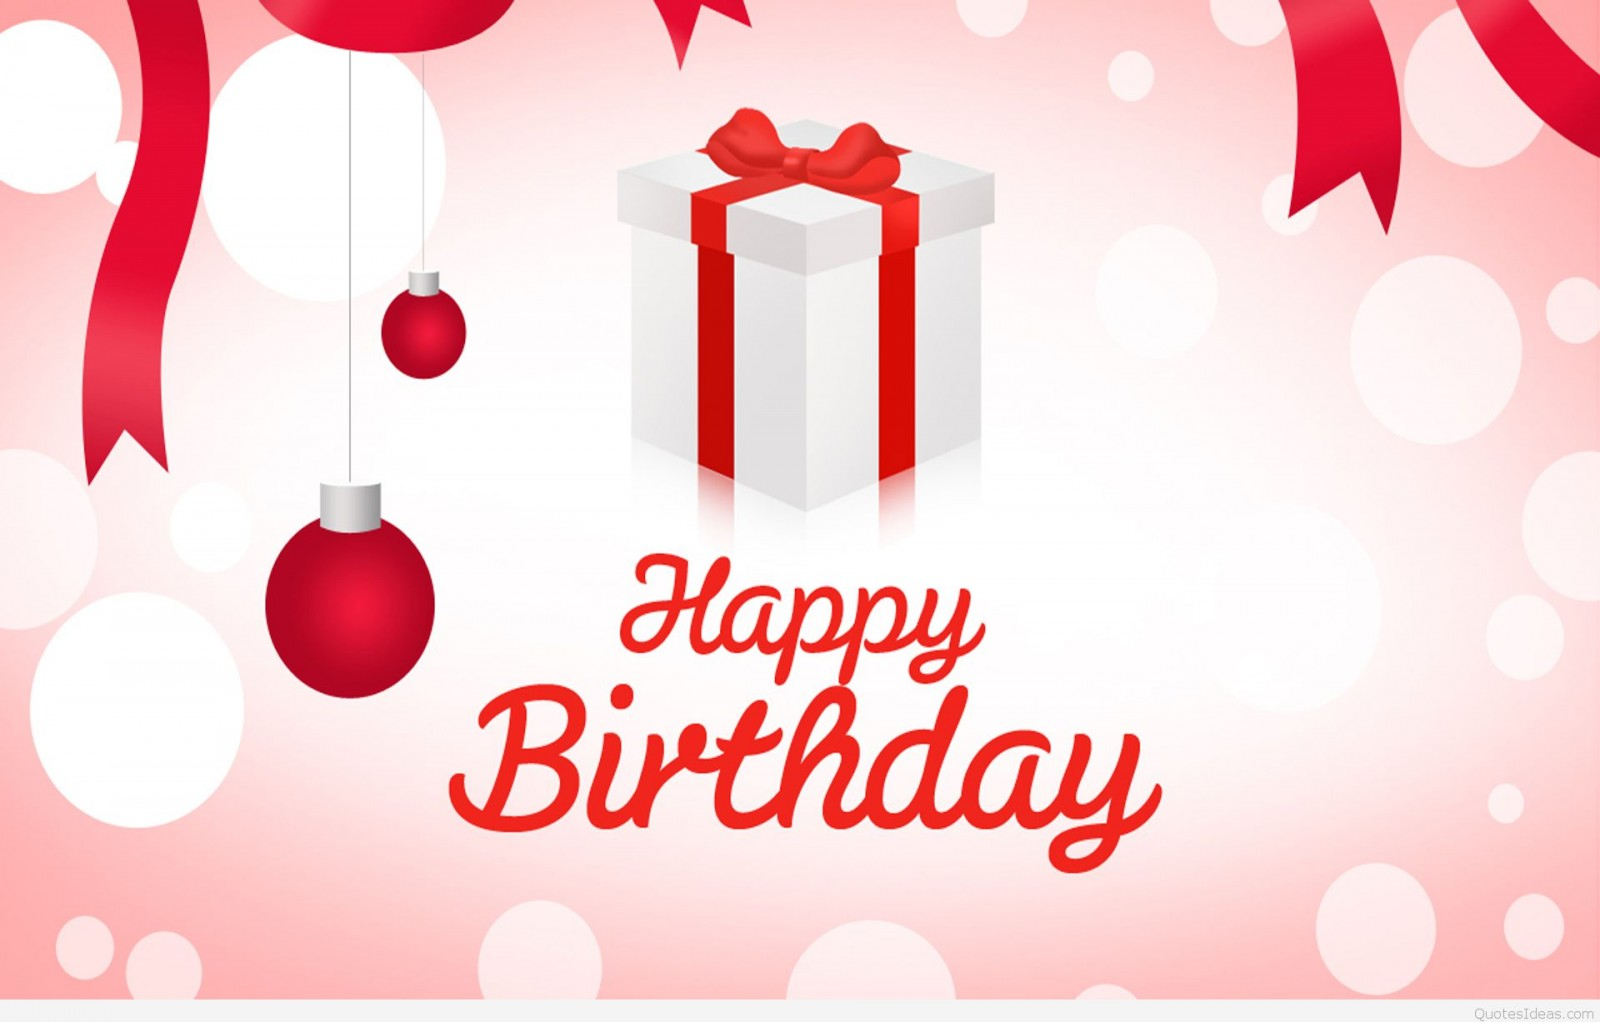 happy birthday screensaver ; free-birthday-screensavers-wallpaper-lovely-best-cute-happy-birthday-messages-cards-wallpapers-wishes-of-free-birthday-screensavers-wallpaper